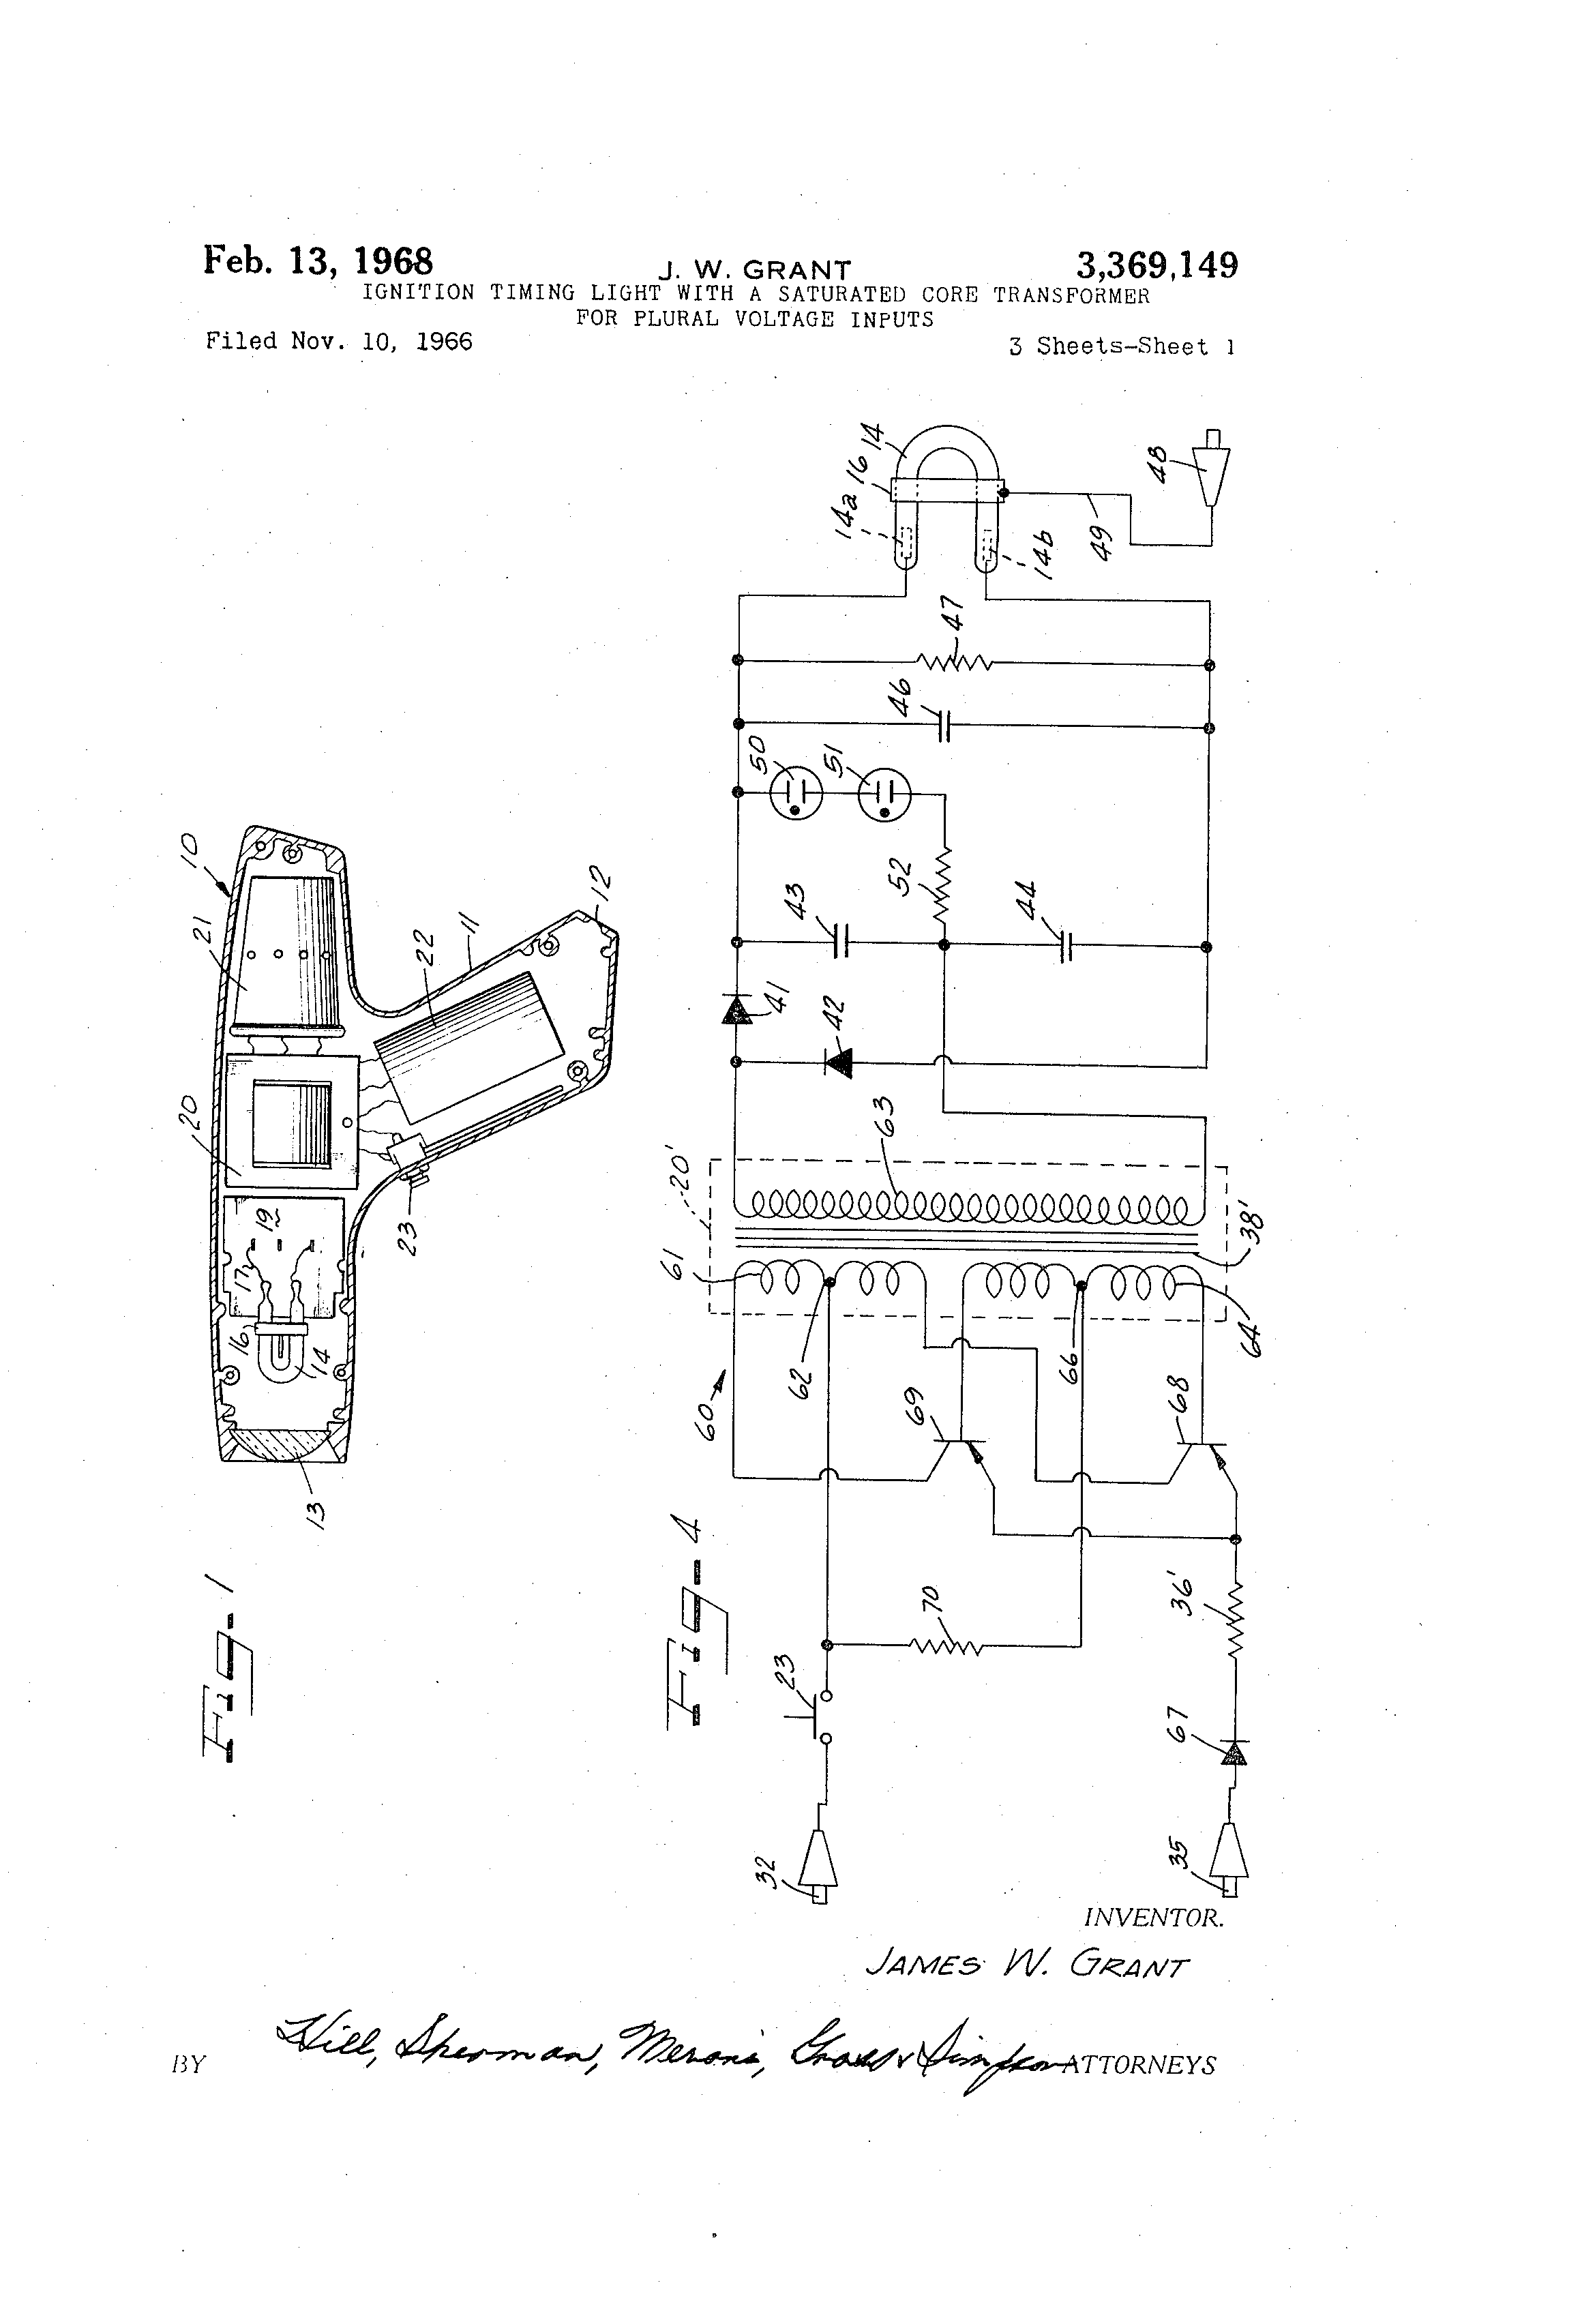 Brevet Us3369149 Ignition Timing Light With A Saturated Core Circuit Diagram Together Pool Transformer Wiring Patent Drawing